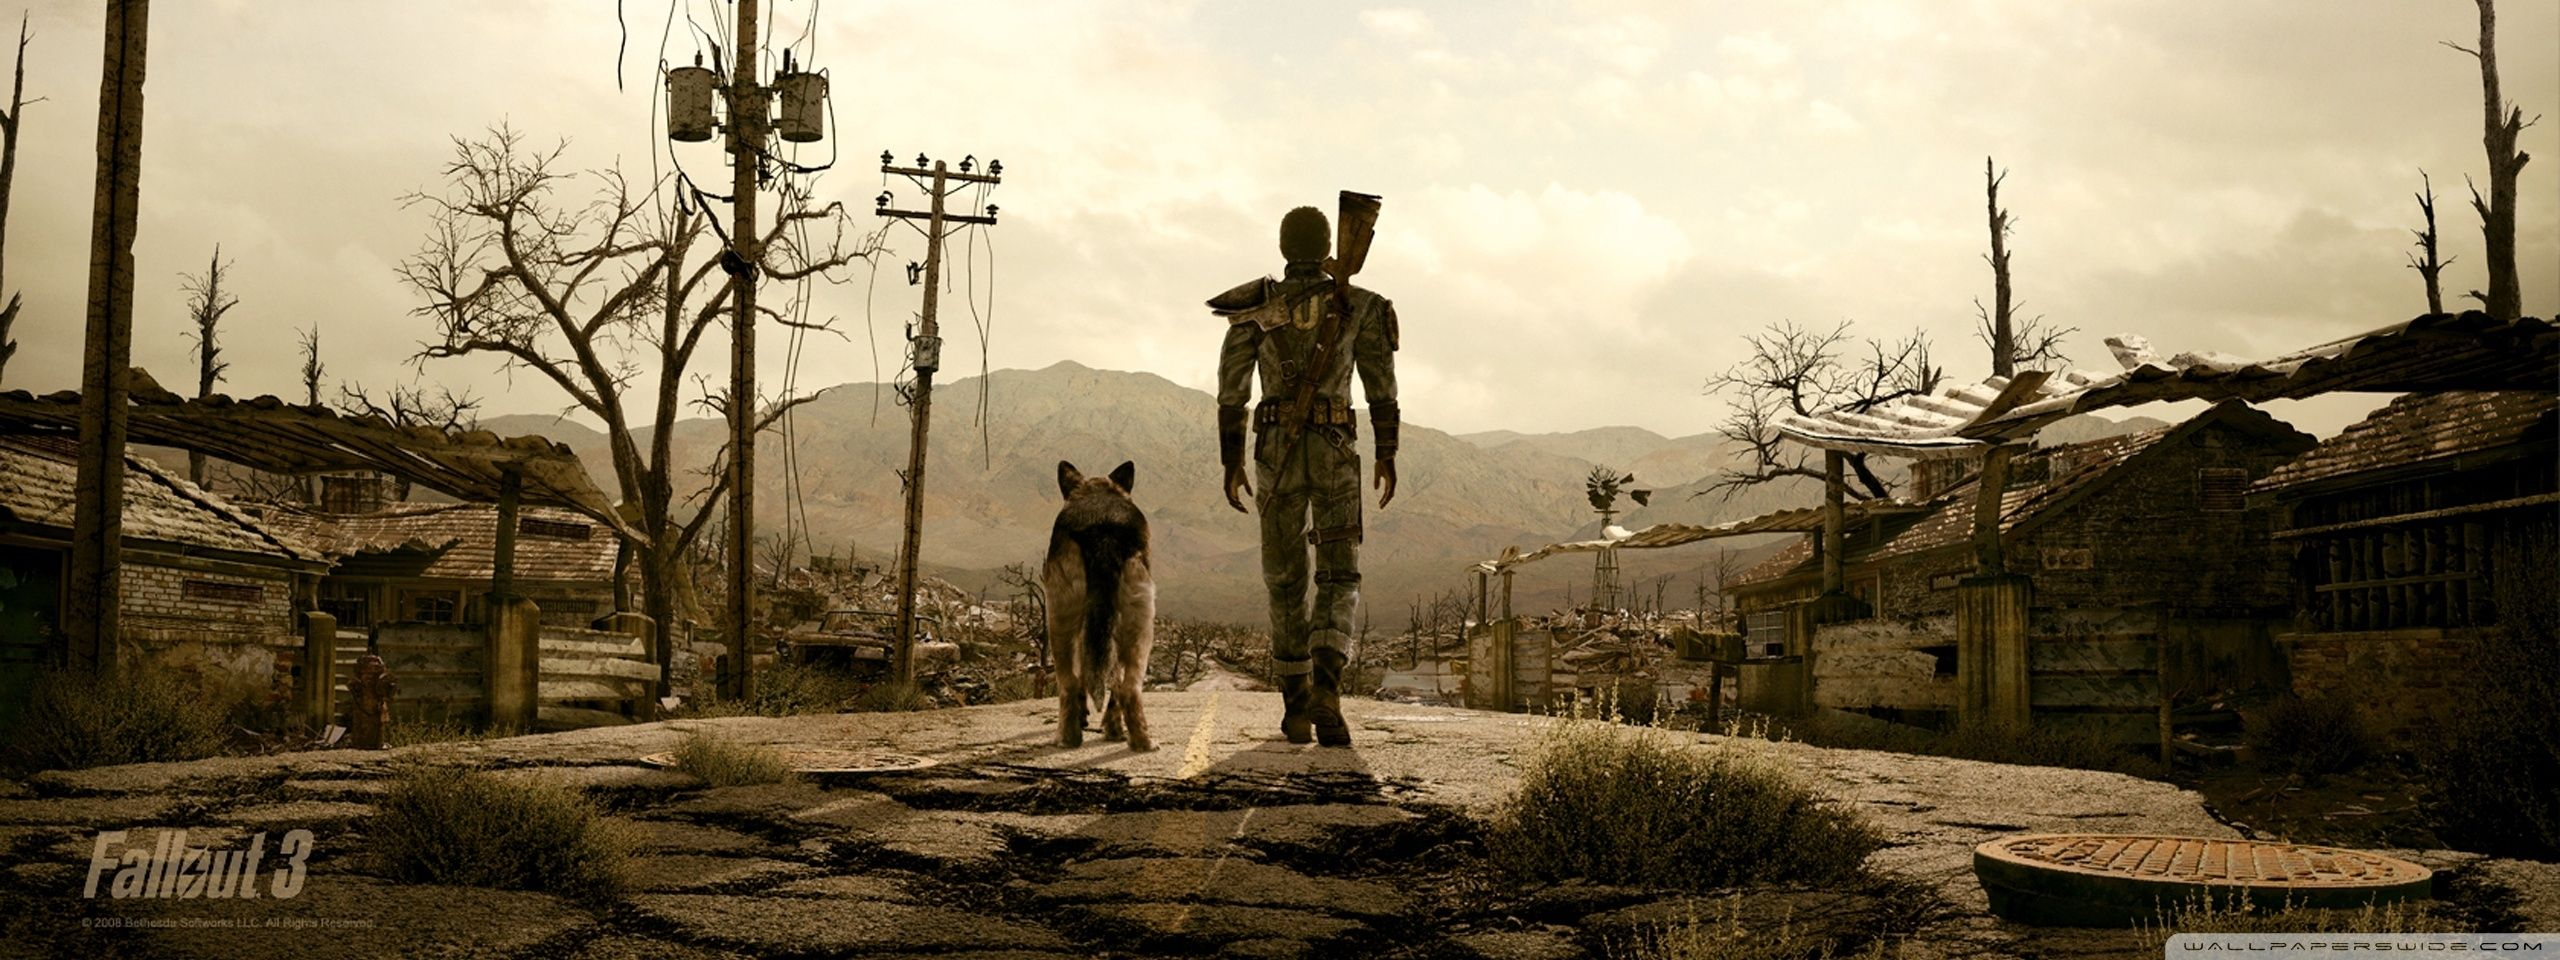 10 Best Dual Monitor Fallout Wallpaper FULL HD 1080p For